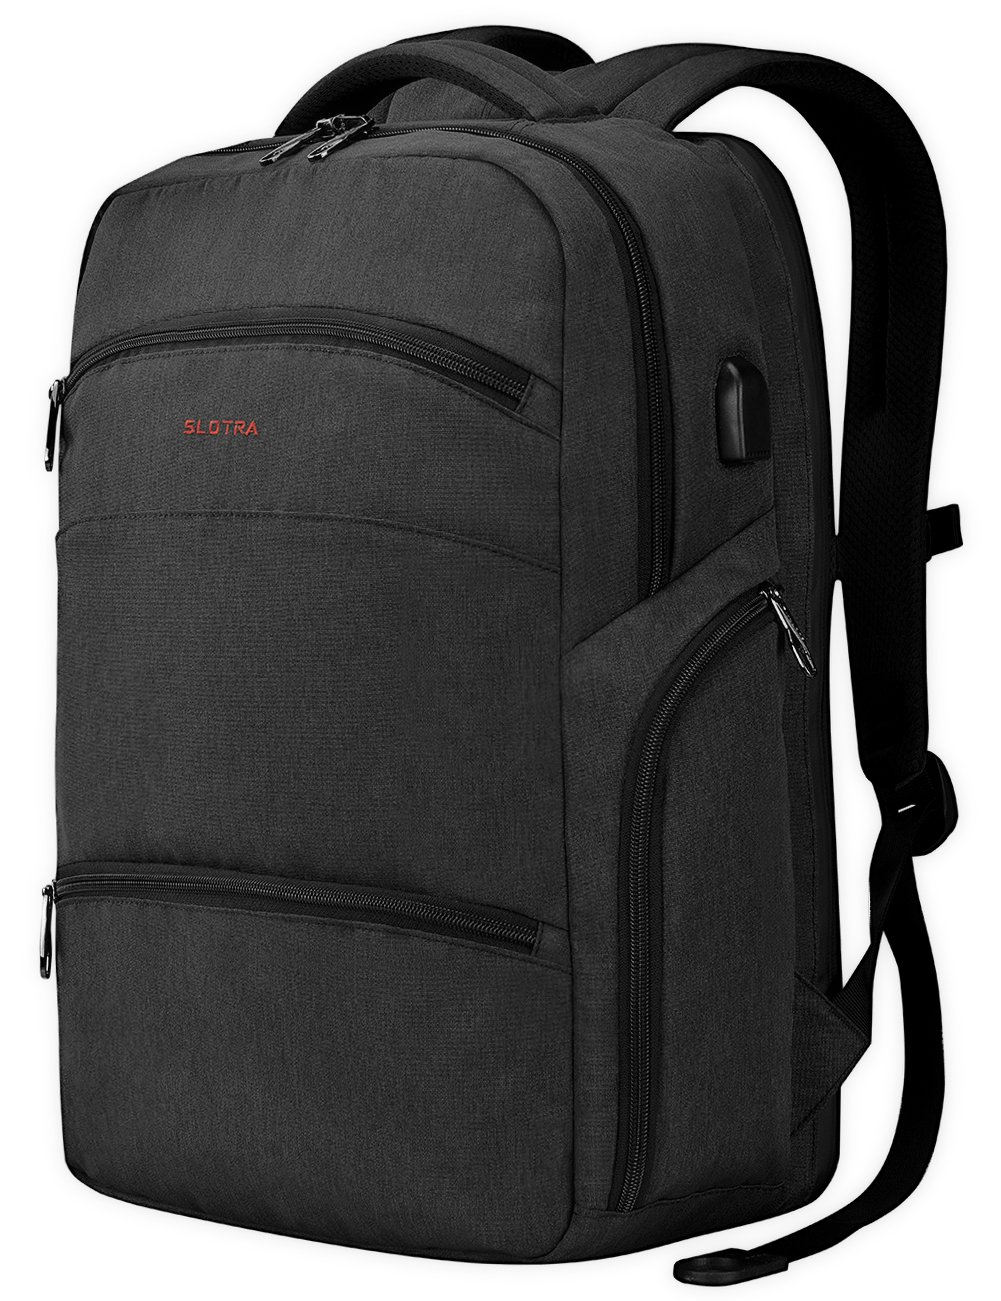 Computer Backpack TSA Friendly ScanSmart Laptop Travel Backpack with Removable USB Charging Port- Fits up to 17 Inch MacBook by Slotra